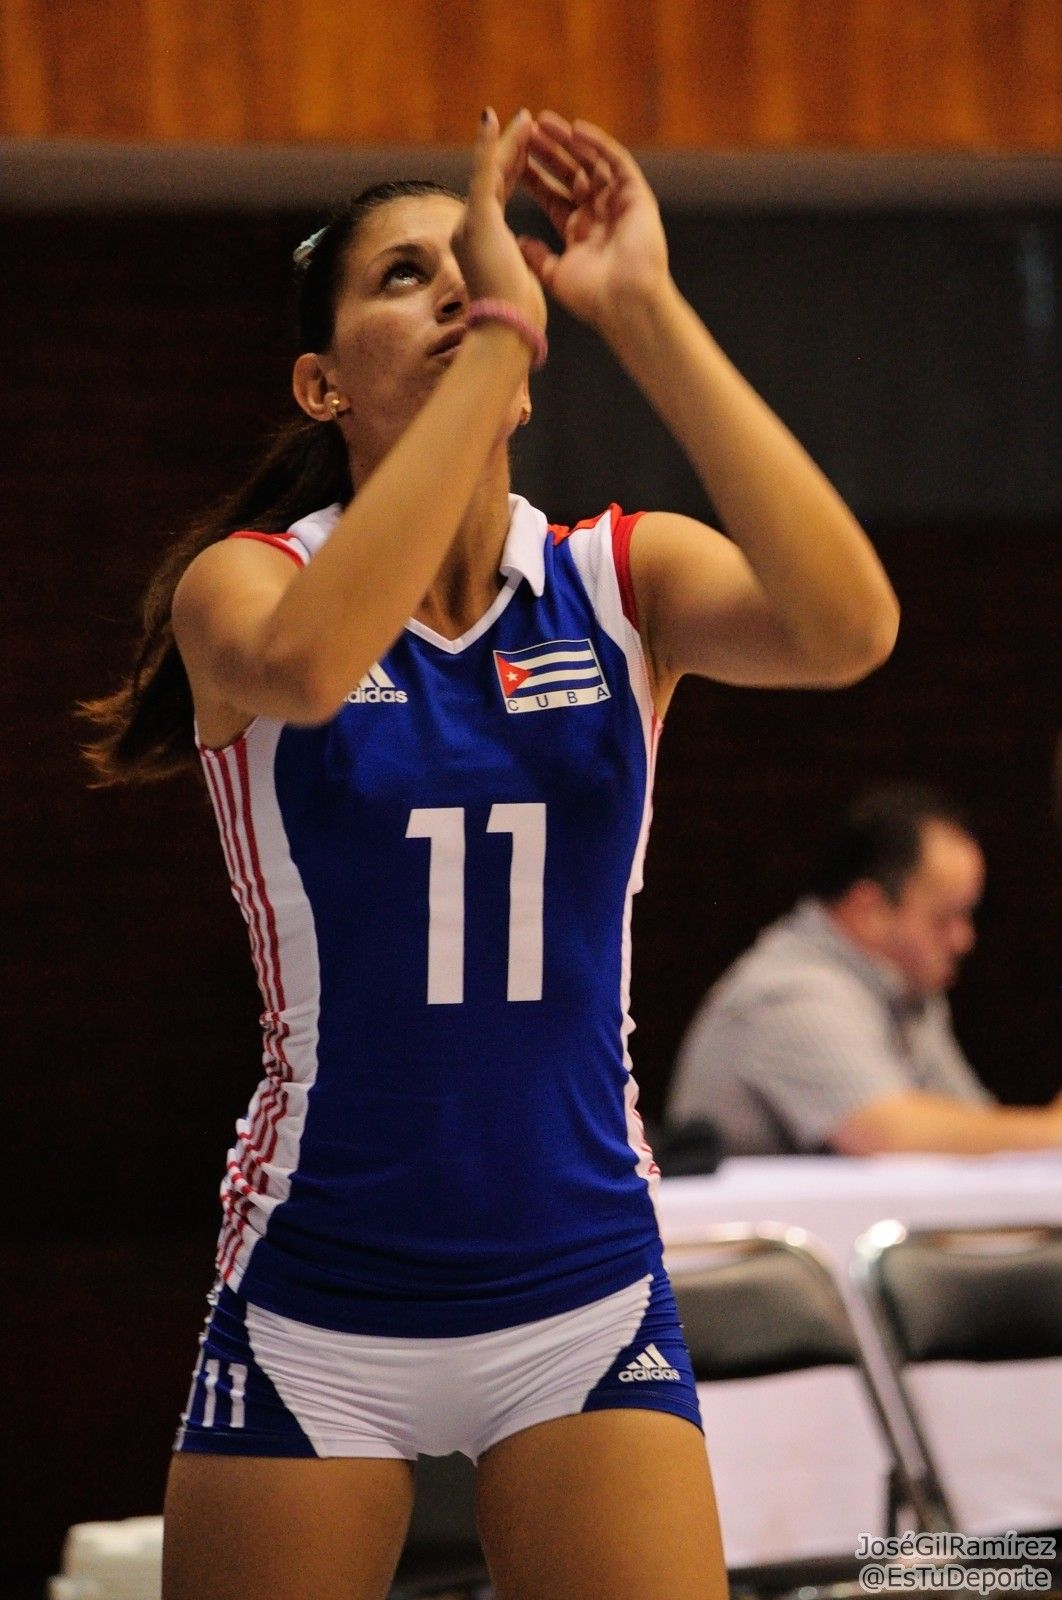 women's volleyball players - HD1062×1600